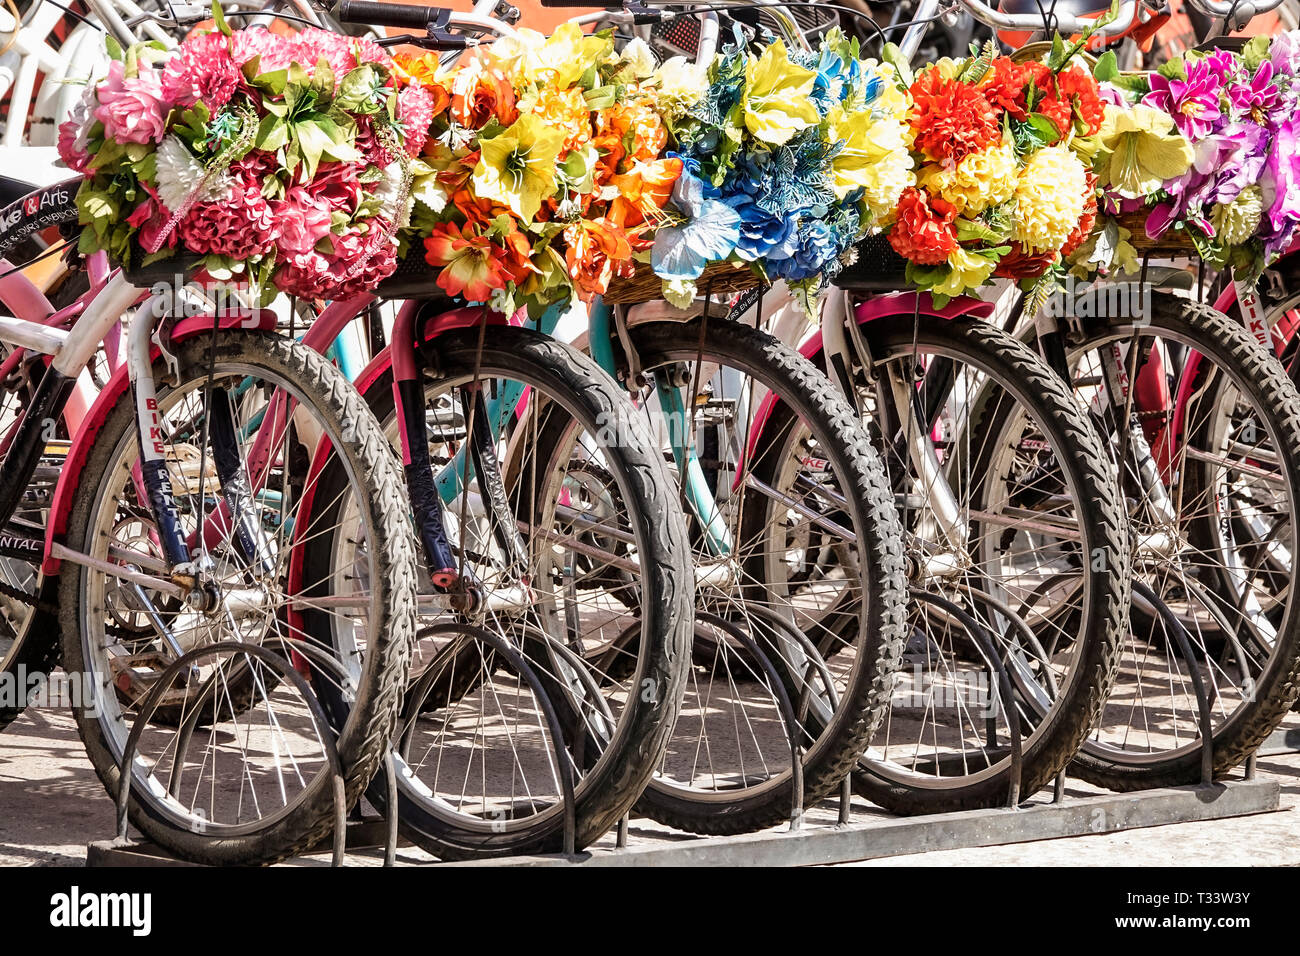 Cartagena Colombia Old Walled City Center centre Getsemani rental bicycles decorative flower baskets wheel - Stock Image